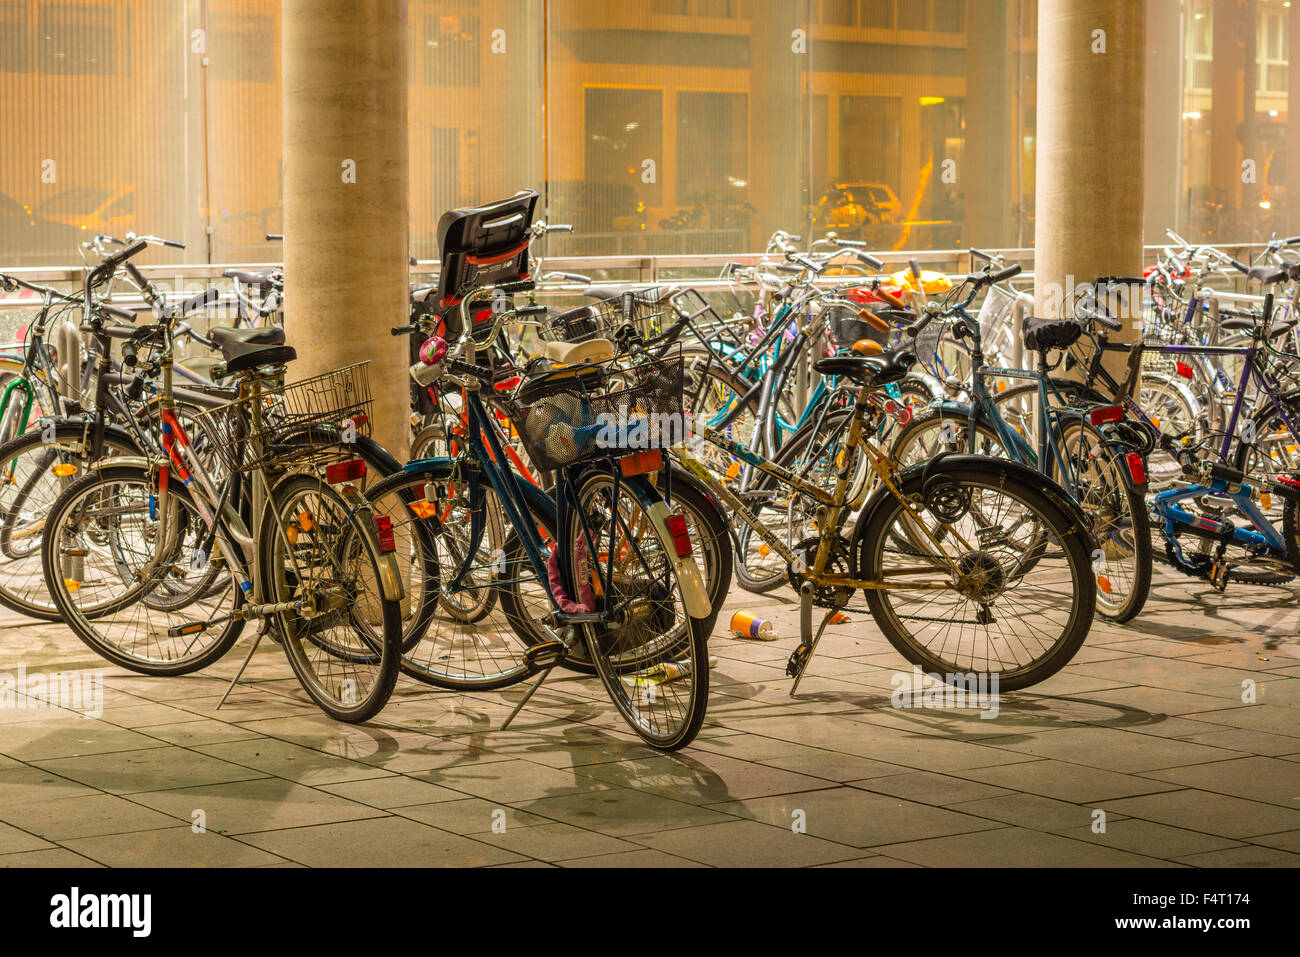 parked bicycles, lights, illumination, Breslau place, Germany, Europe, bicycle parking, bicycles, bikes, Cologne, - Stock Image